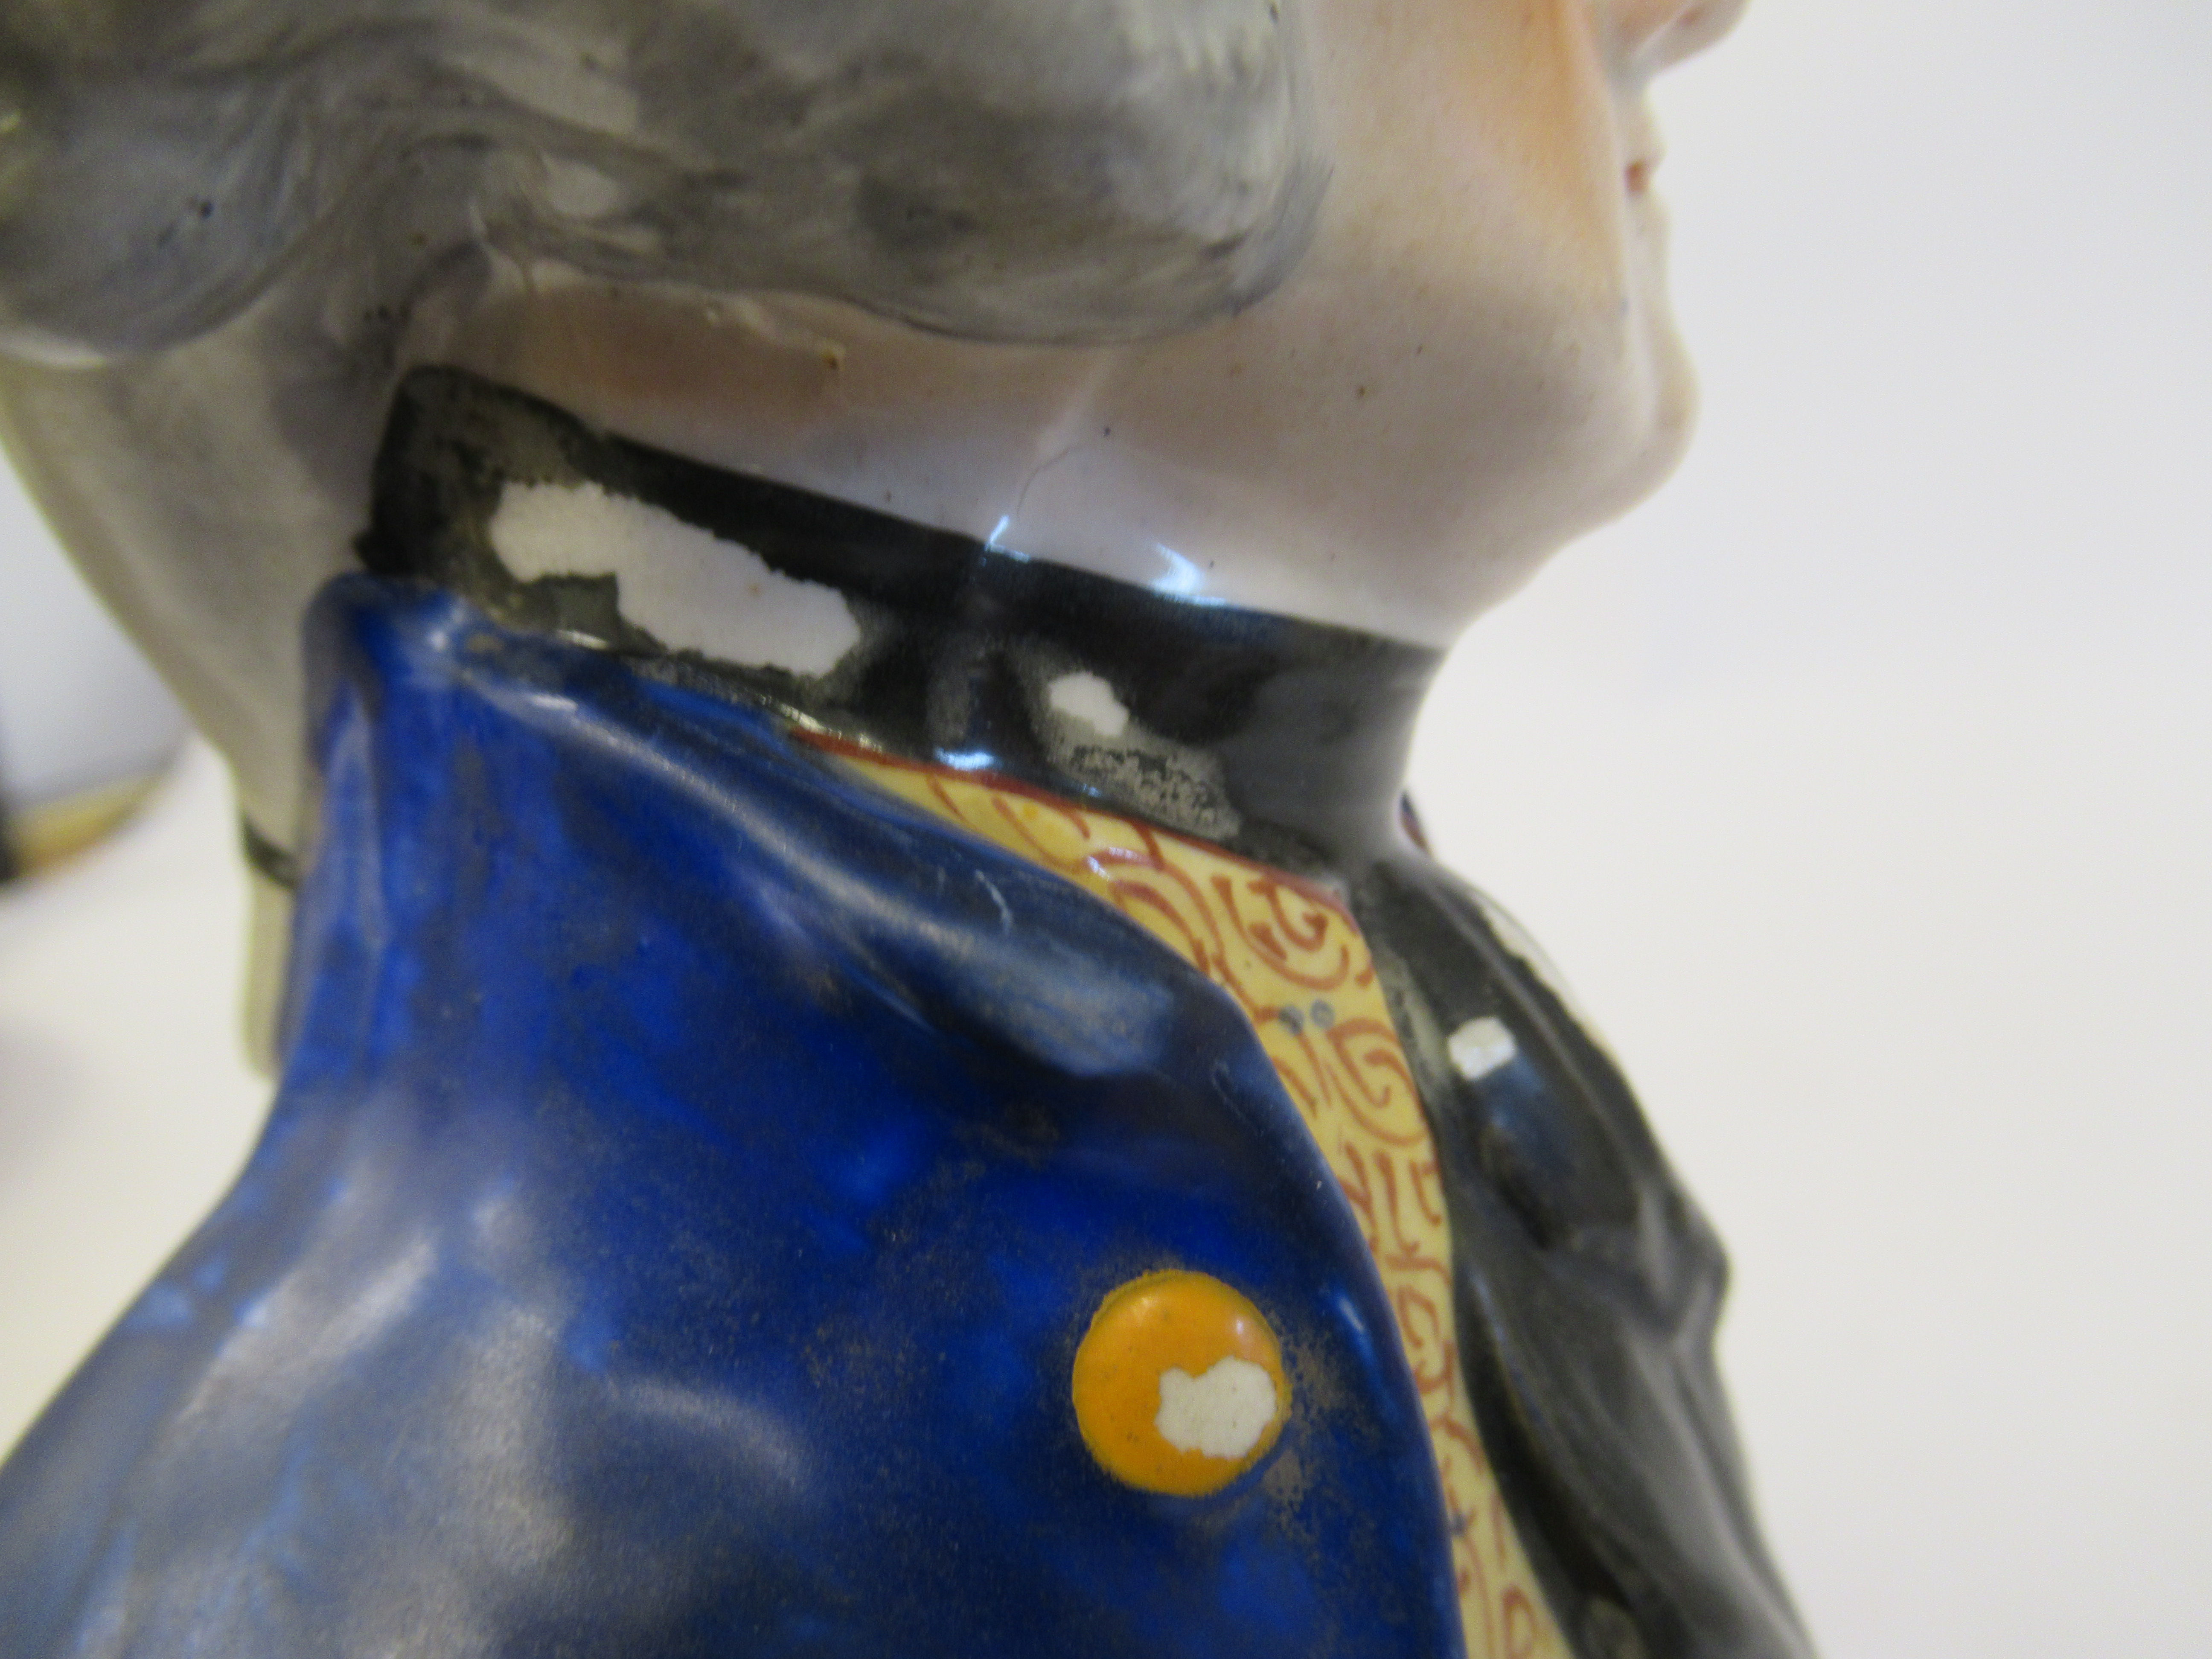 A 19thC Staffordshire pottery bust, featuring a bewigged gentleman, wearing a coat and cravat, on an - Image 6 of 8